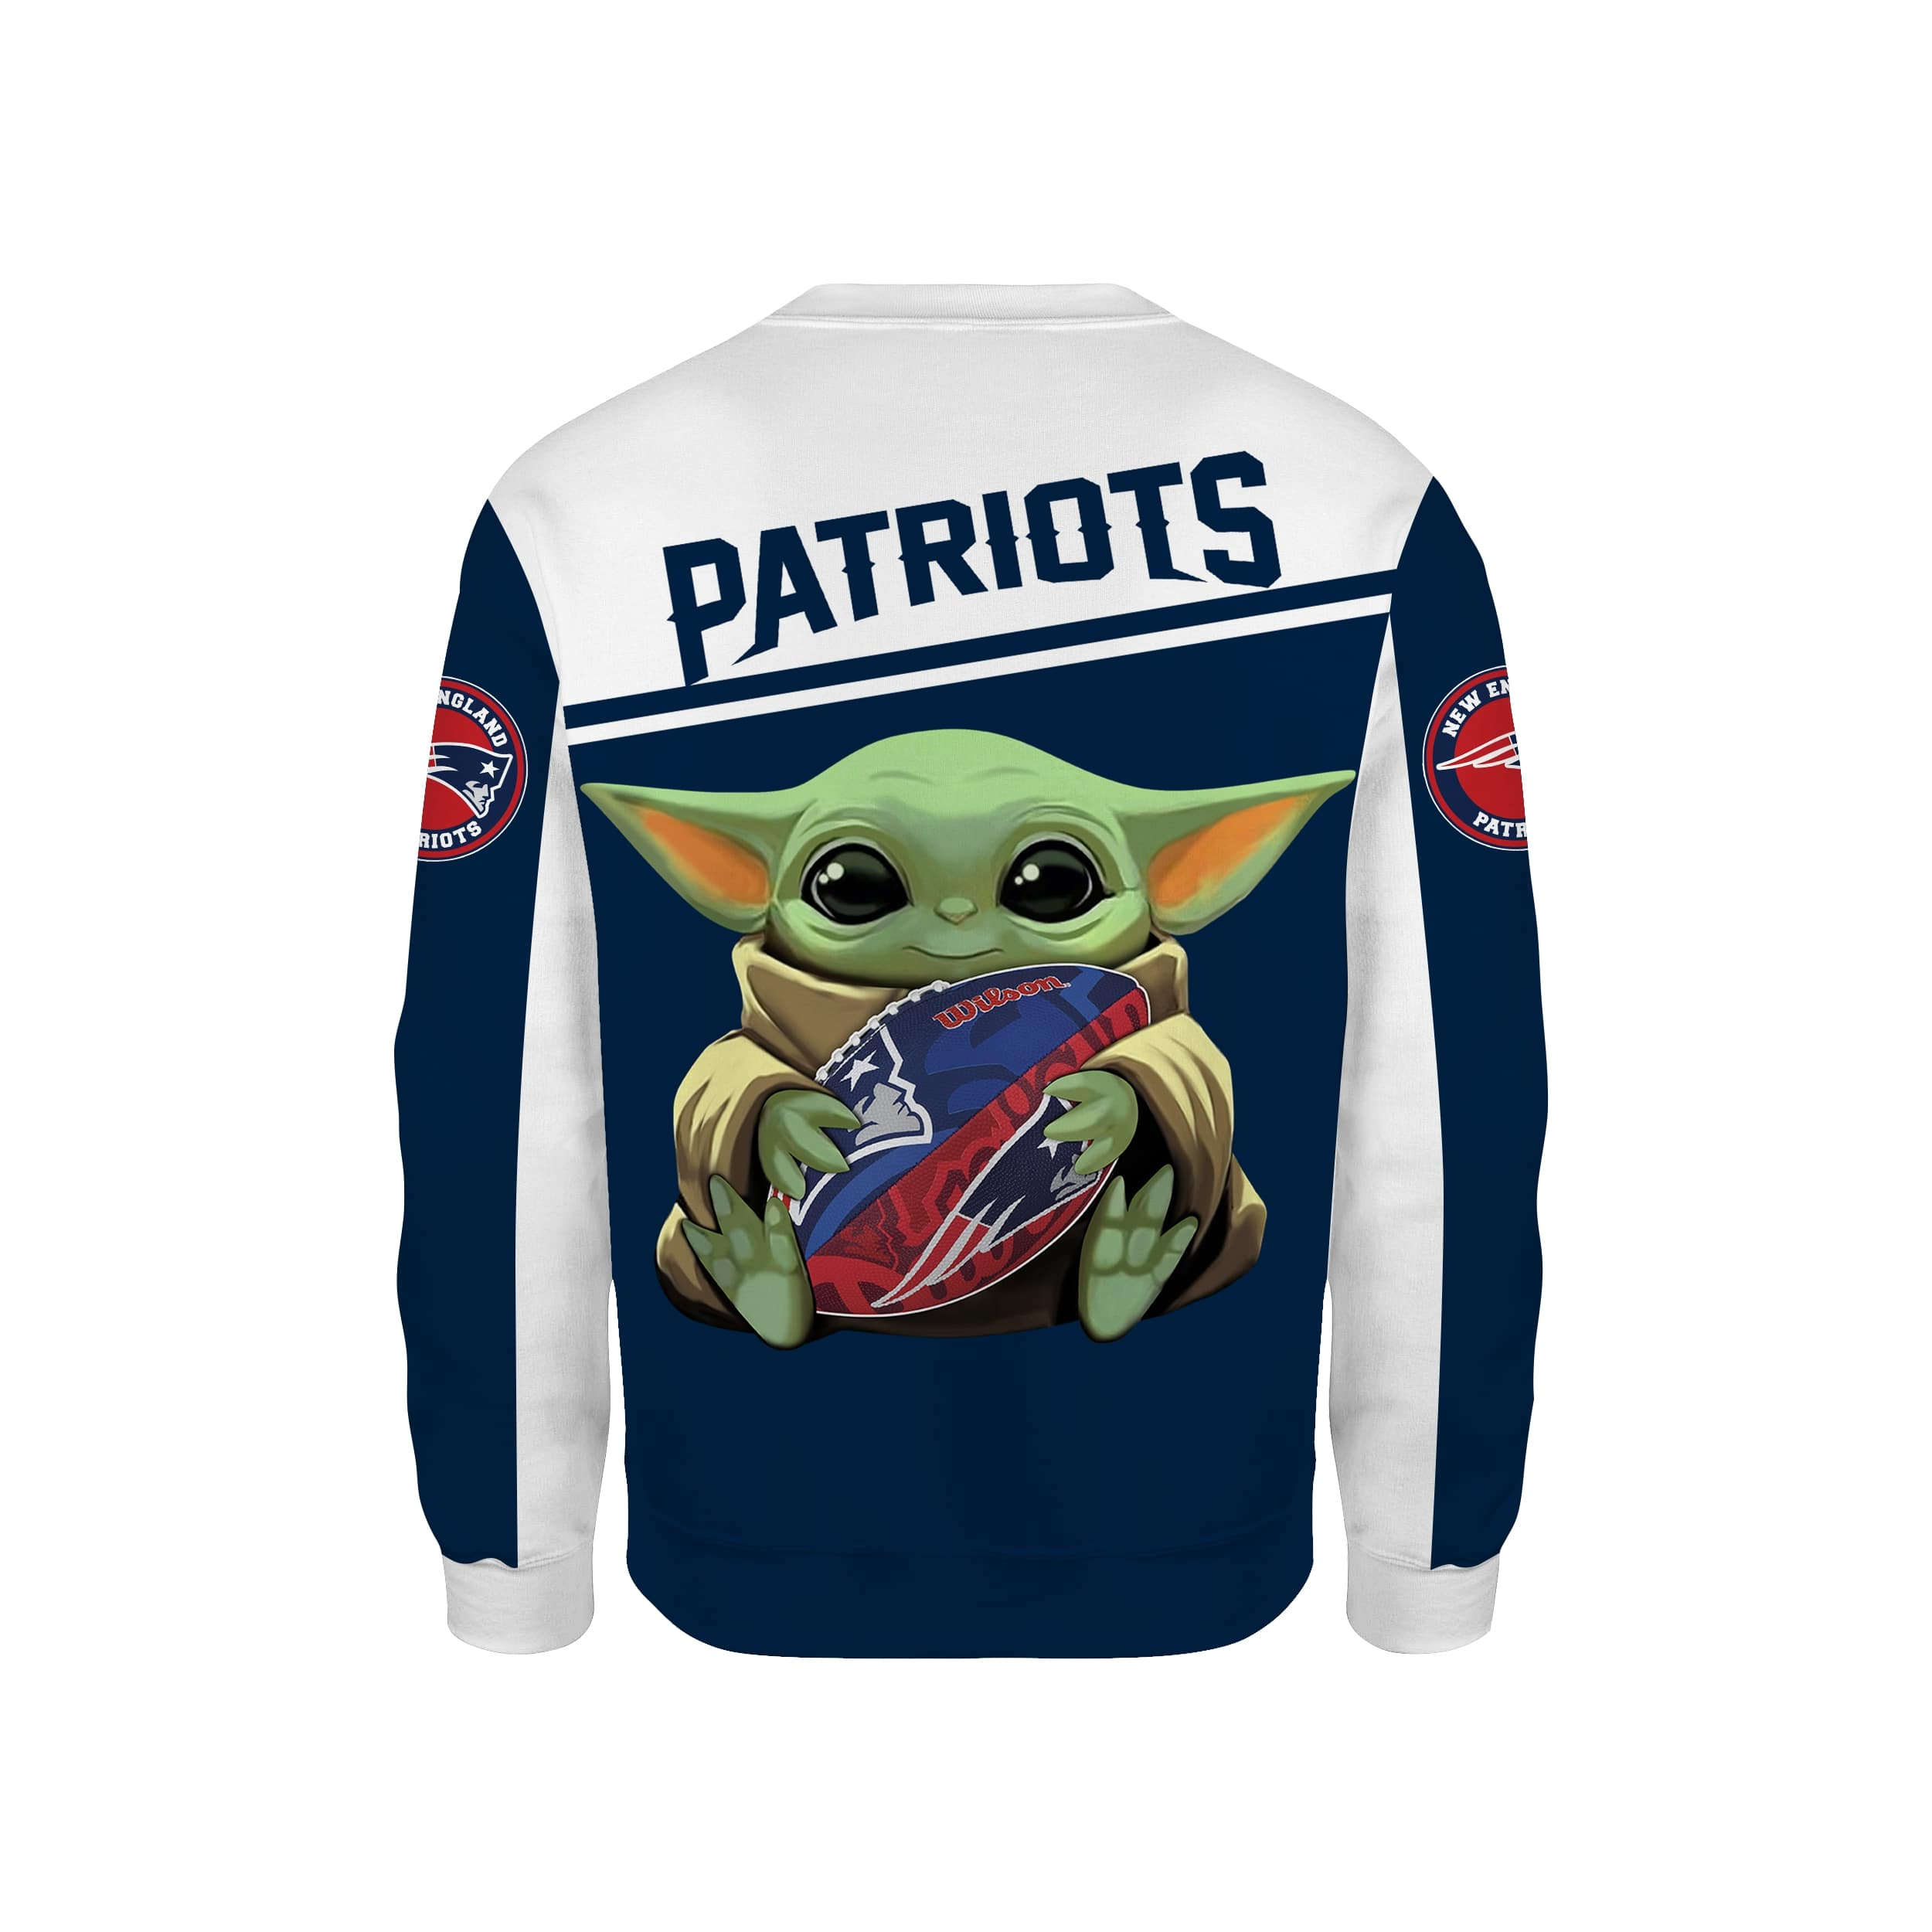 Baby yoda new england patriots full printing sweatshirt - back